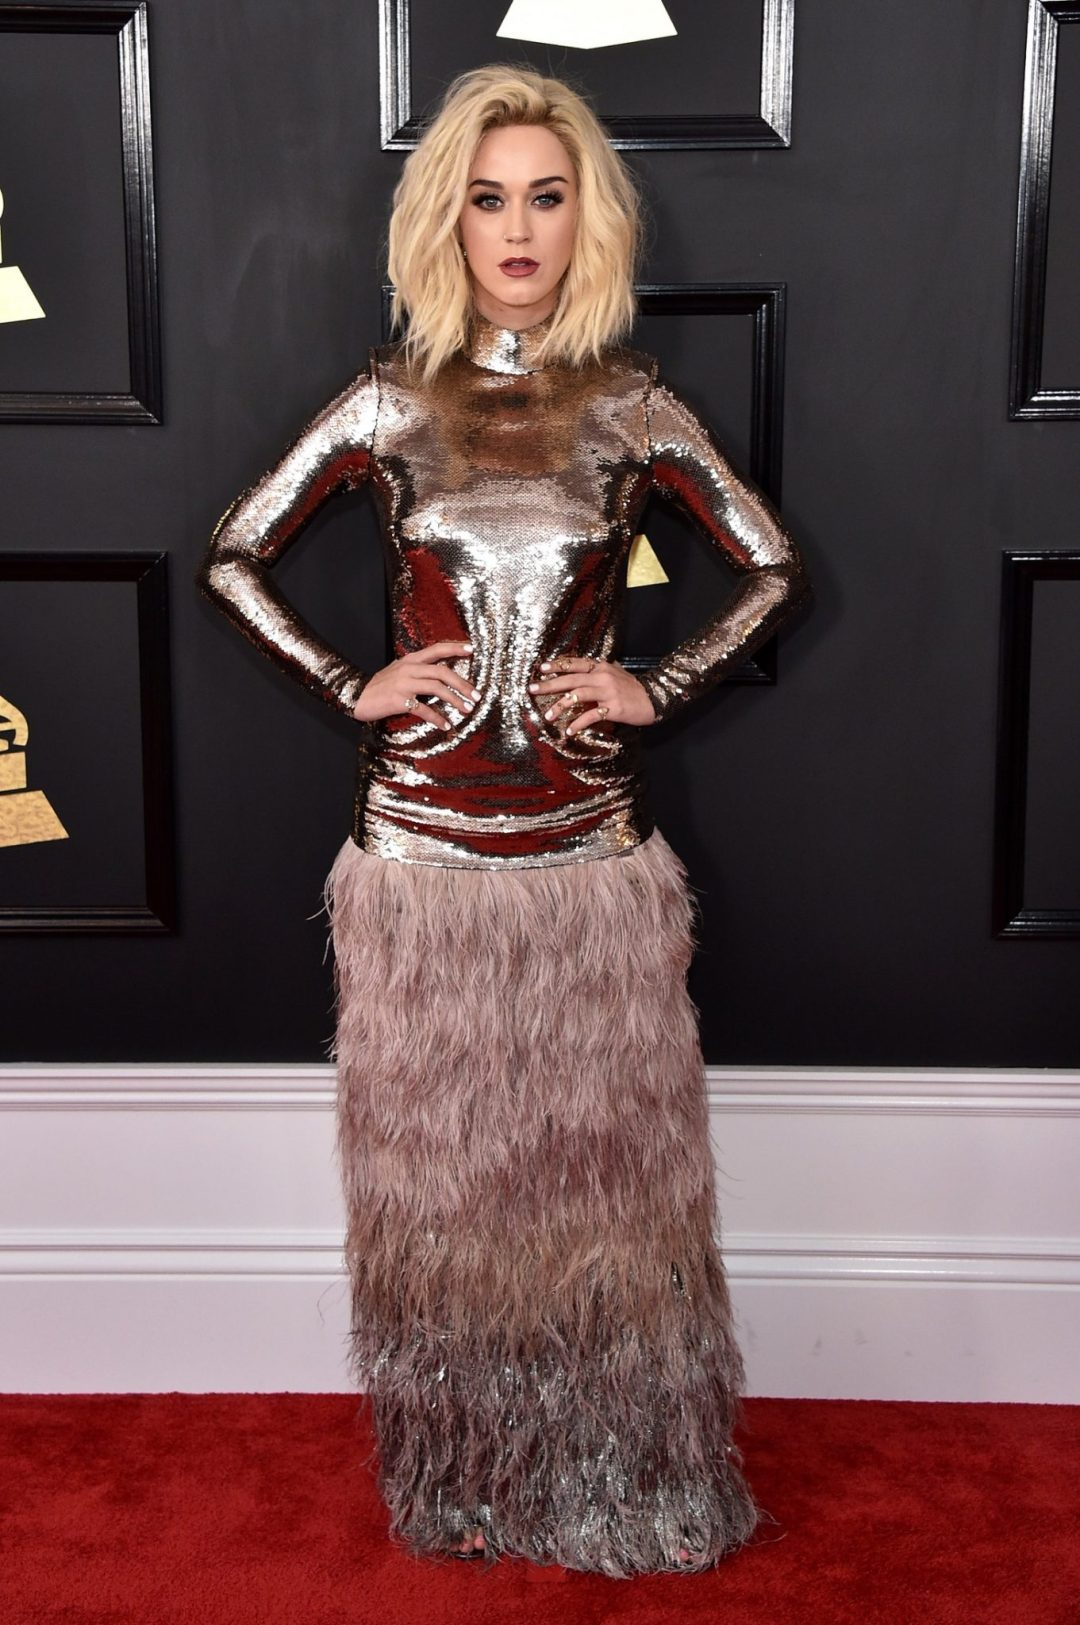 Katy Perry - Grammys Red Carpet